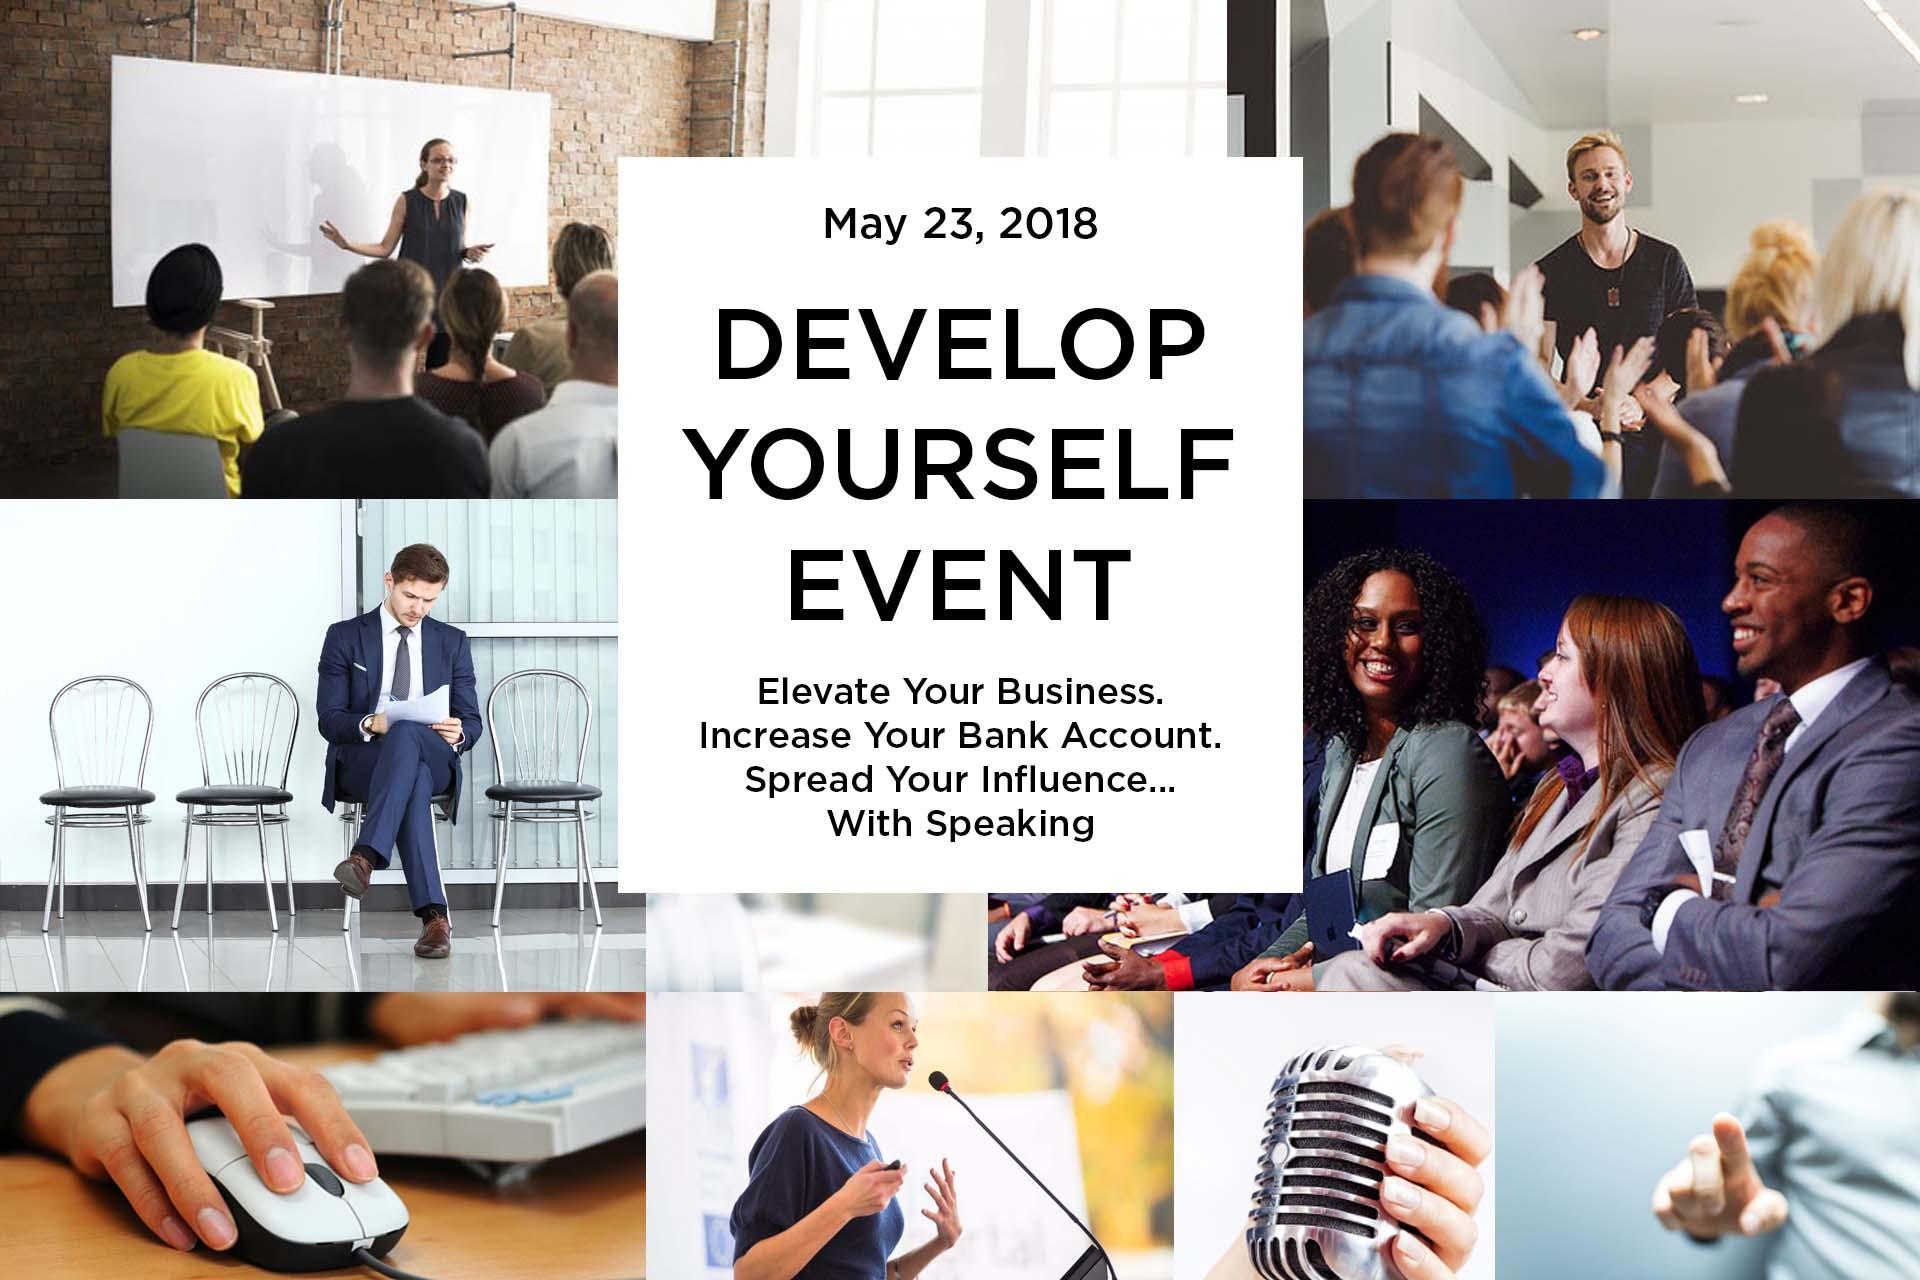 Develop Yourself Event